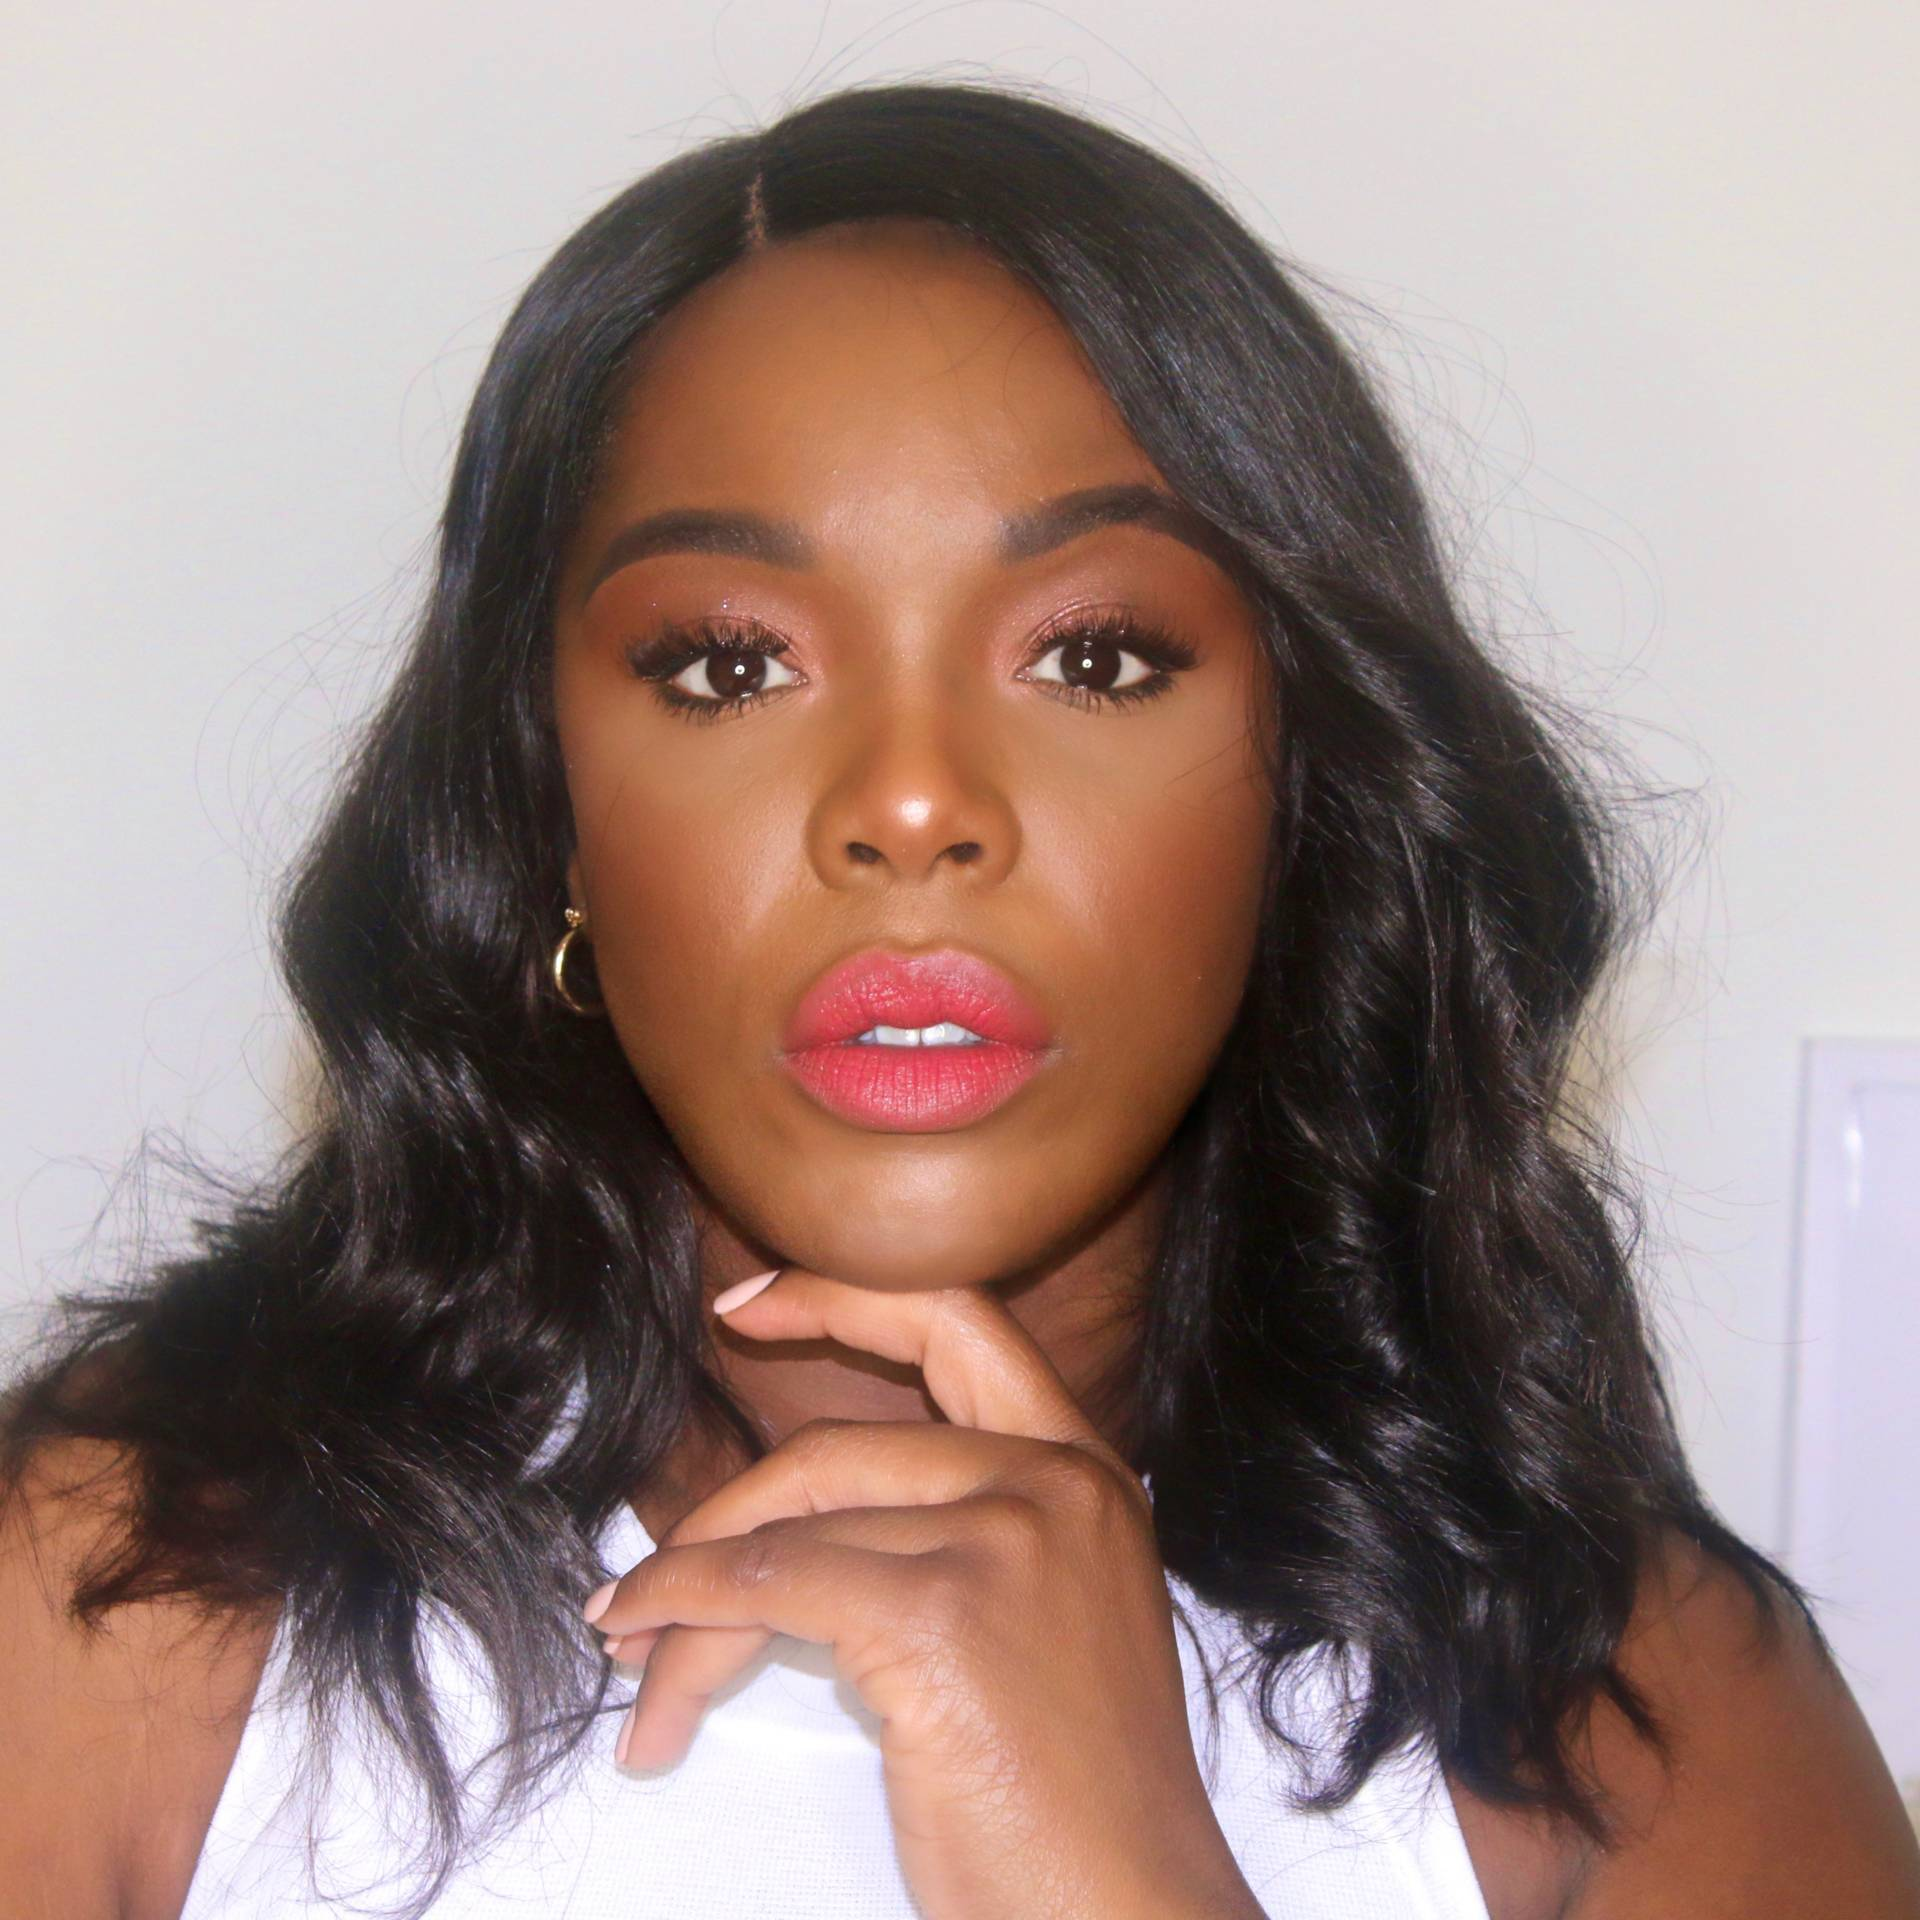 SWATCH FENTY BEAUTY MATTEMOISELLE SPANKED ON DARK SKIN WOMAN